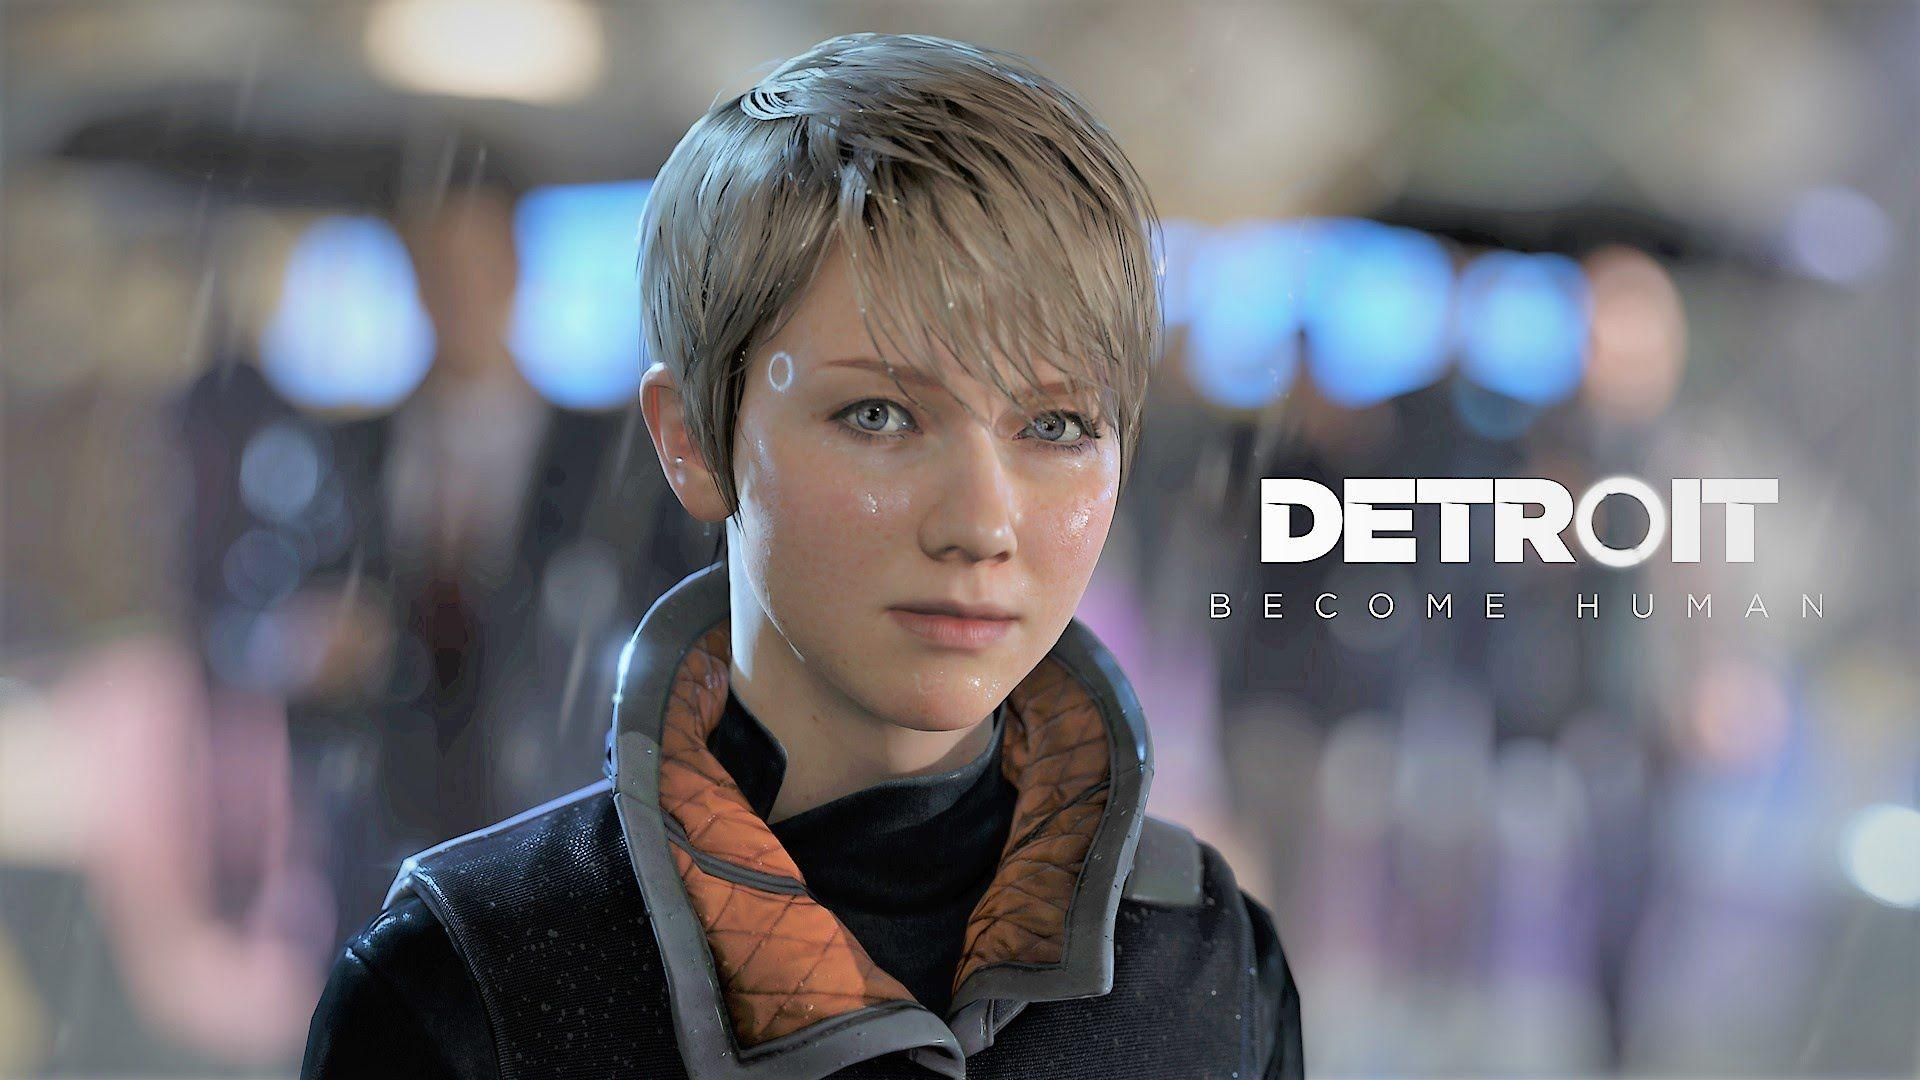 Detroit: Become Human Wallpapers - Wallpaper Cave